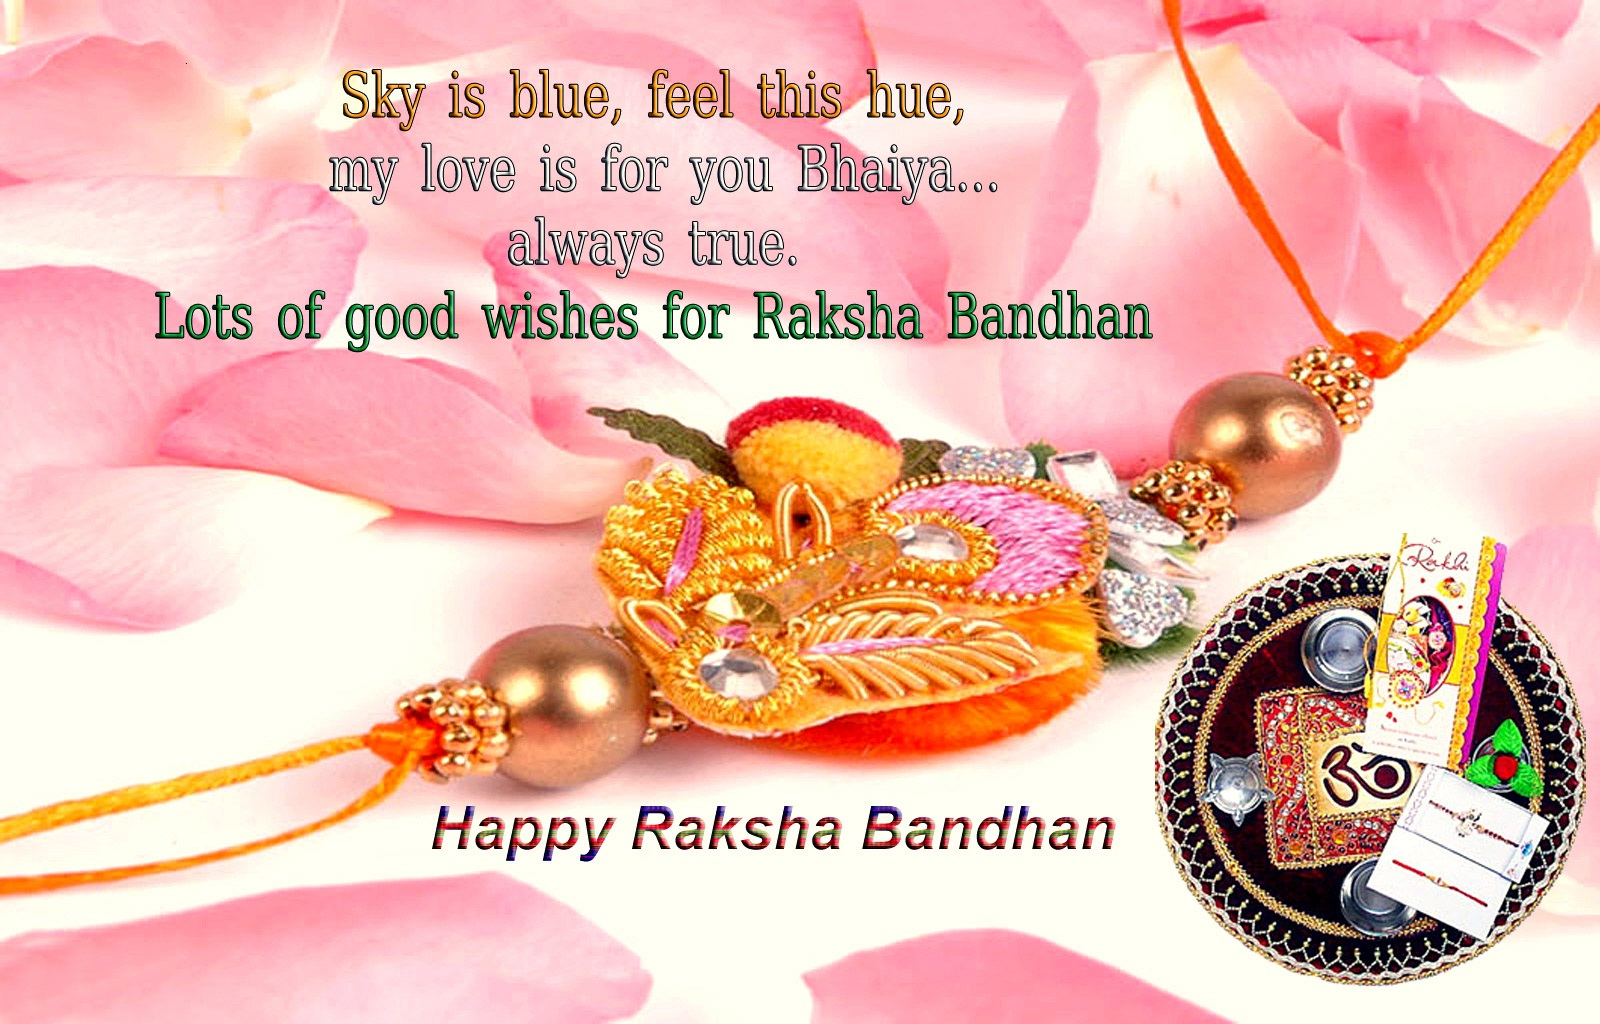 Happy raksha bandhan whatsapp status and facebook messages techicy happy raksha bandhan whatsapp status and messages kristyandbryce Image collections